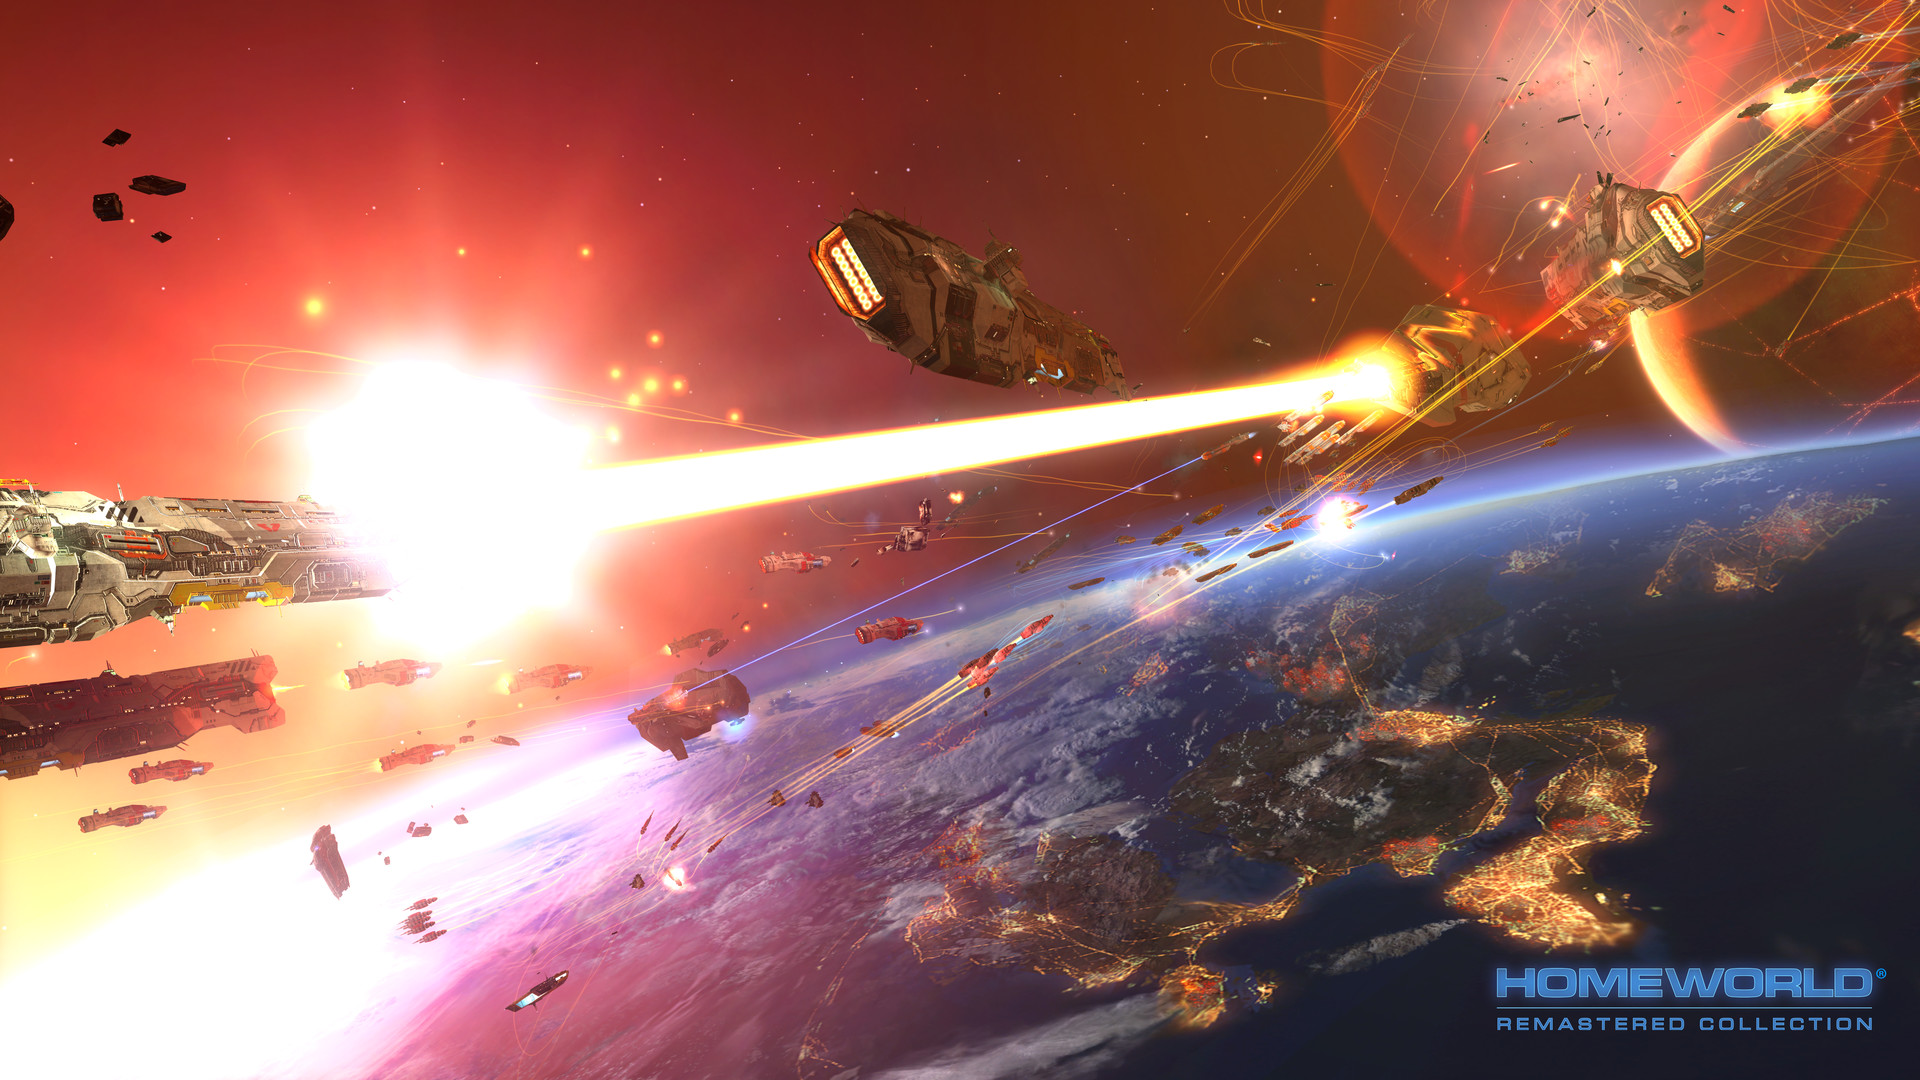 Homeworld Remastered Collection (Gearbox Software	) (RUS|ENG) [RePack]  [2015] [Real-Time Strategy(RTS)]